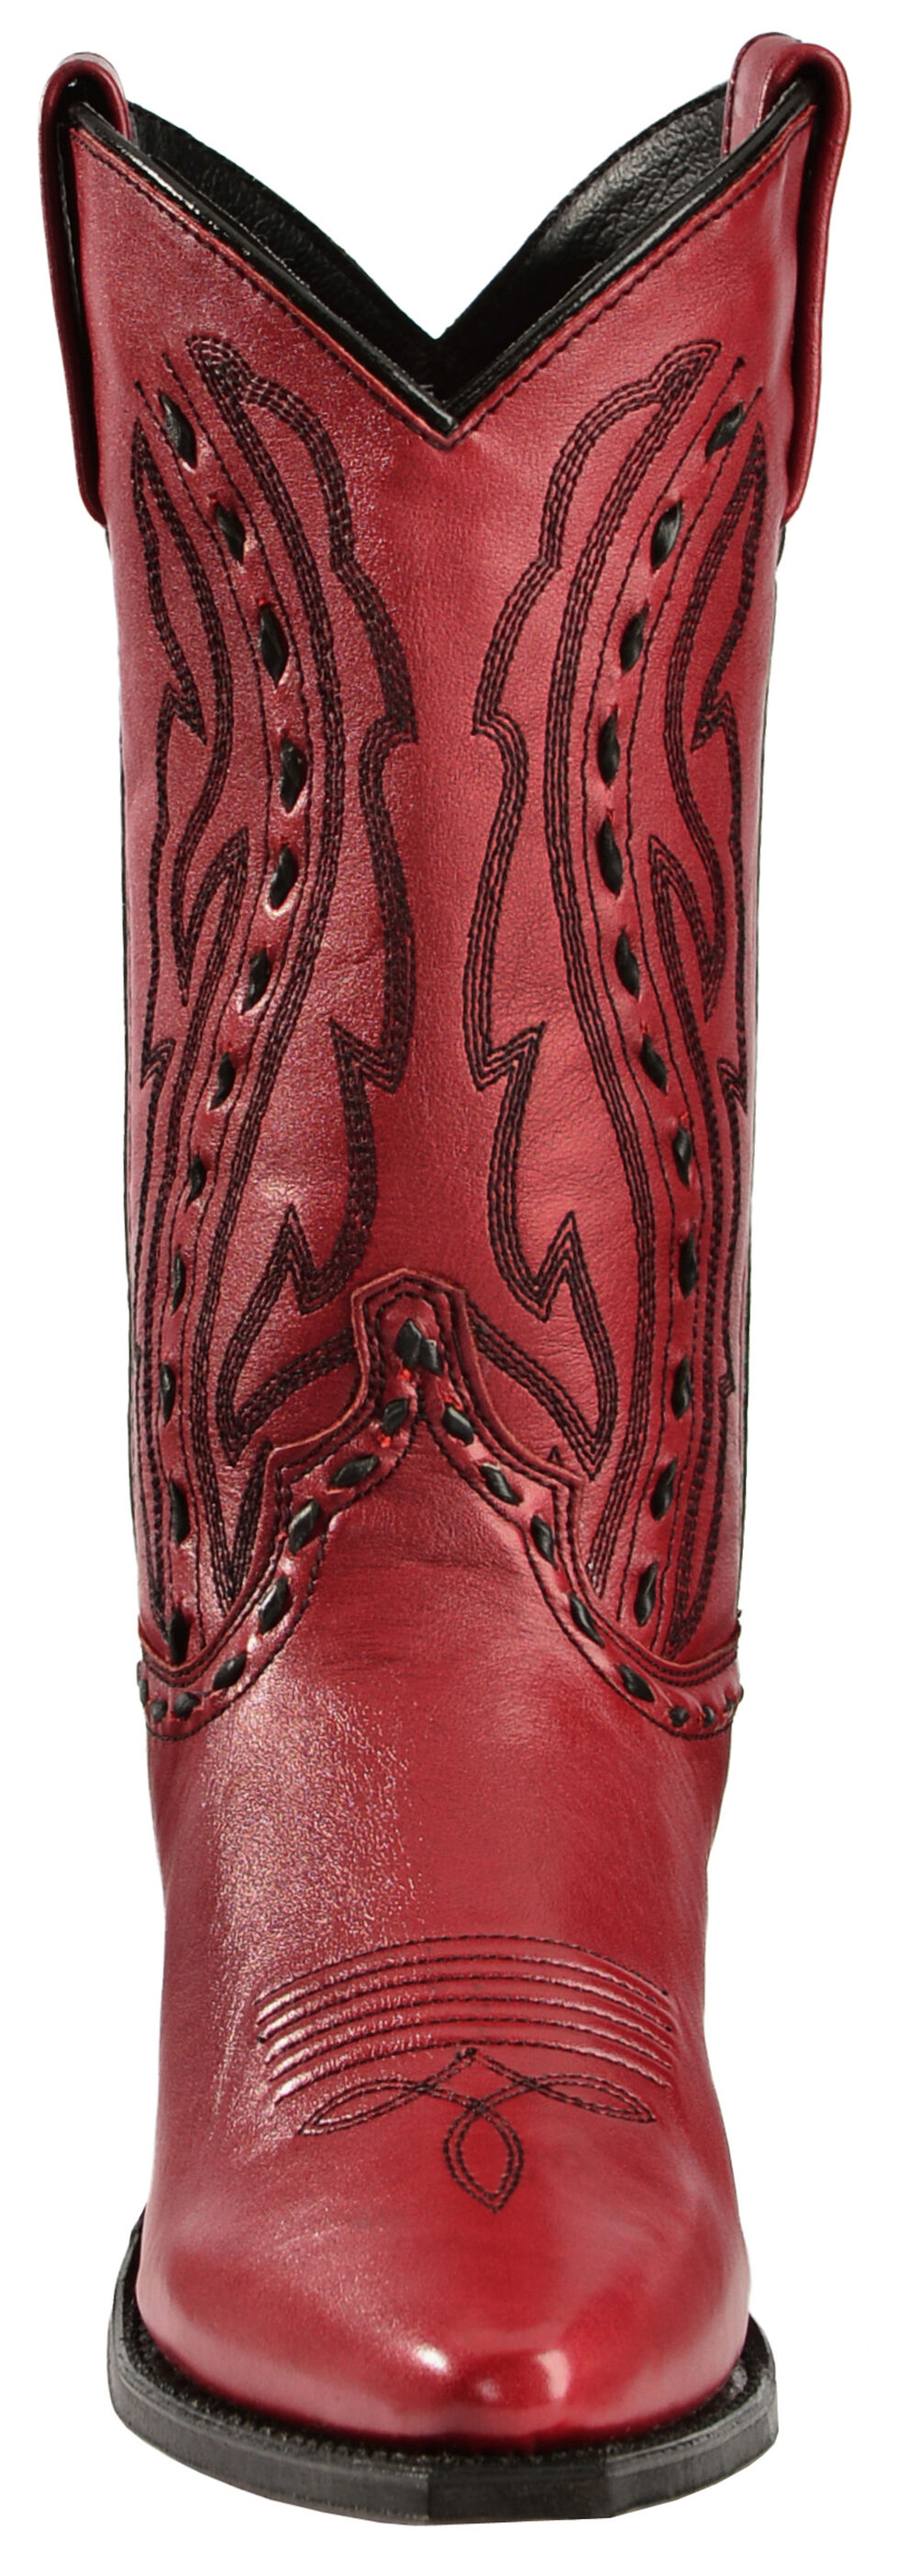 Abilene Whipstitched Red Cowgirl Boots, Red, hi-res